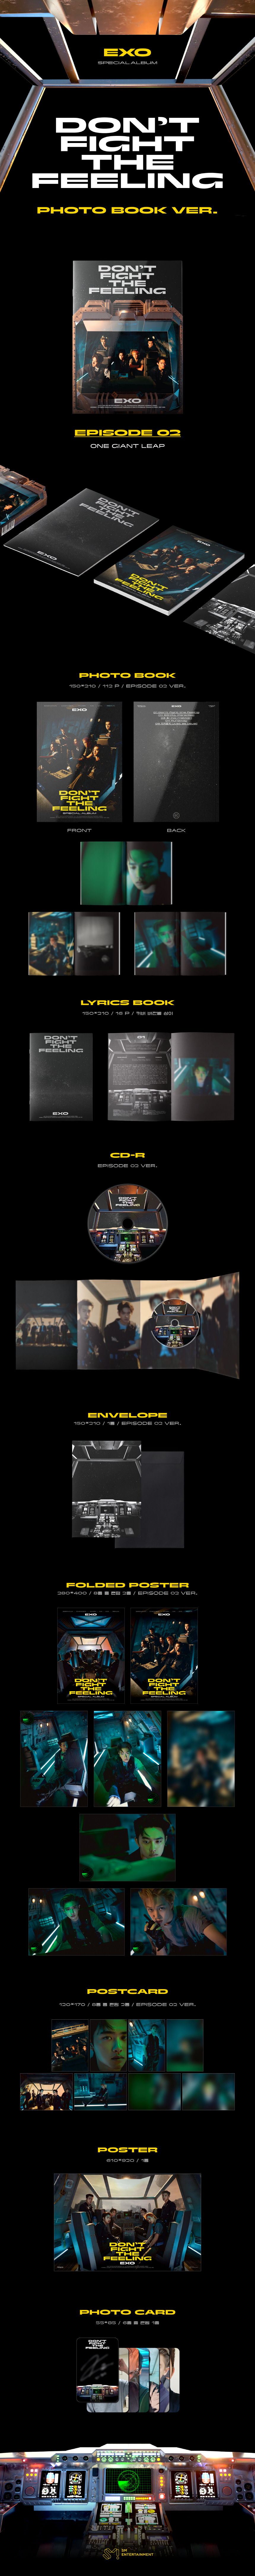 exo-dont-fight-the-feeling-ver-2-detail-kpop-malaysia.jpg